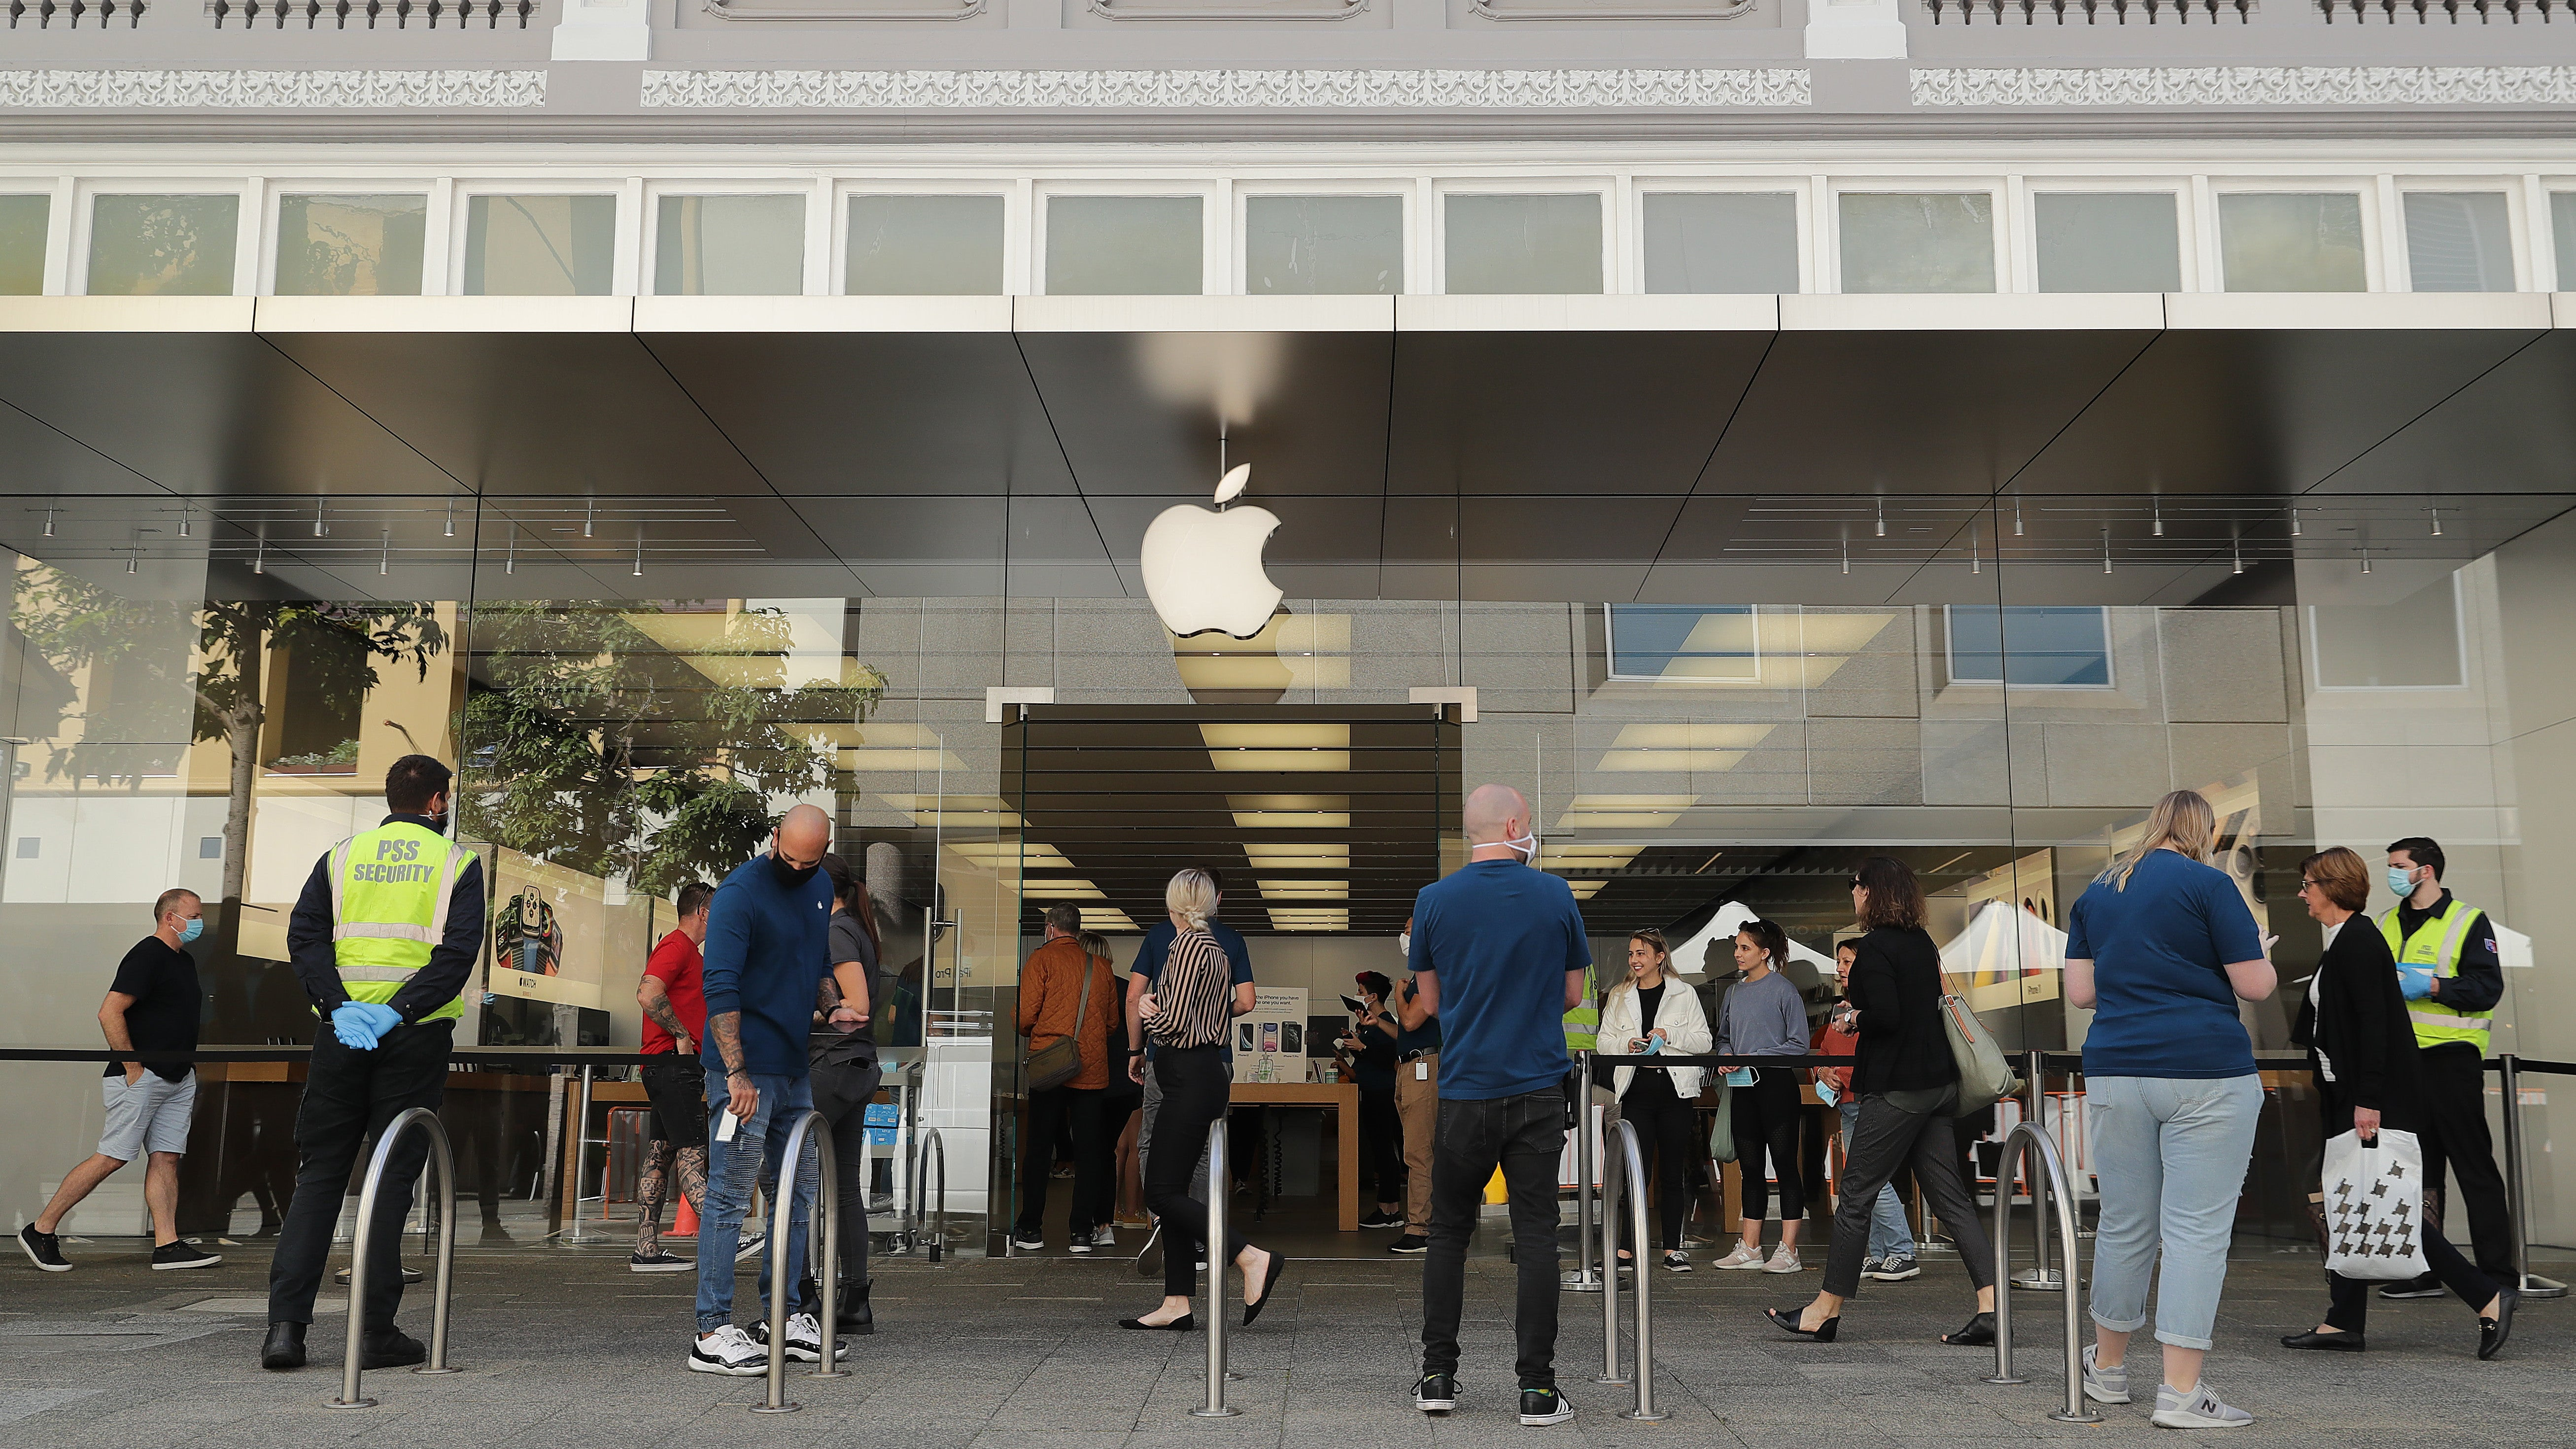 Apple Is Reopening 25 Stores In The U.S. With Some New Rules